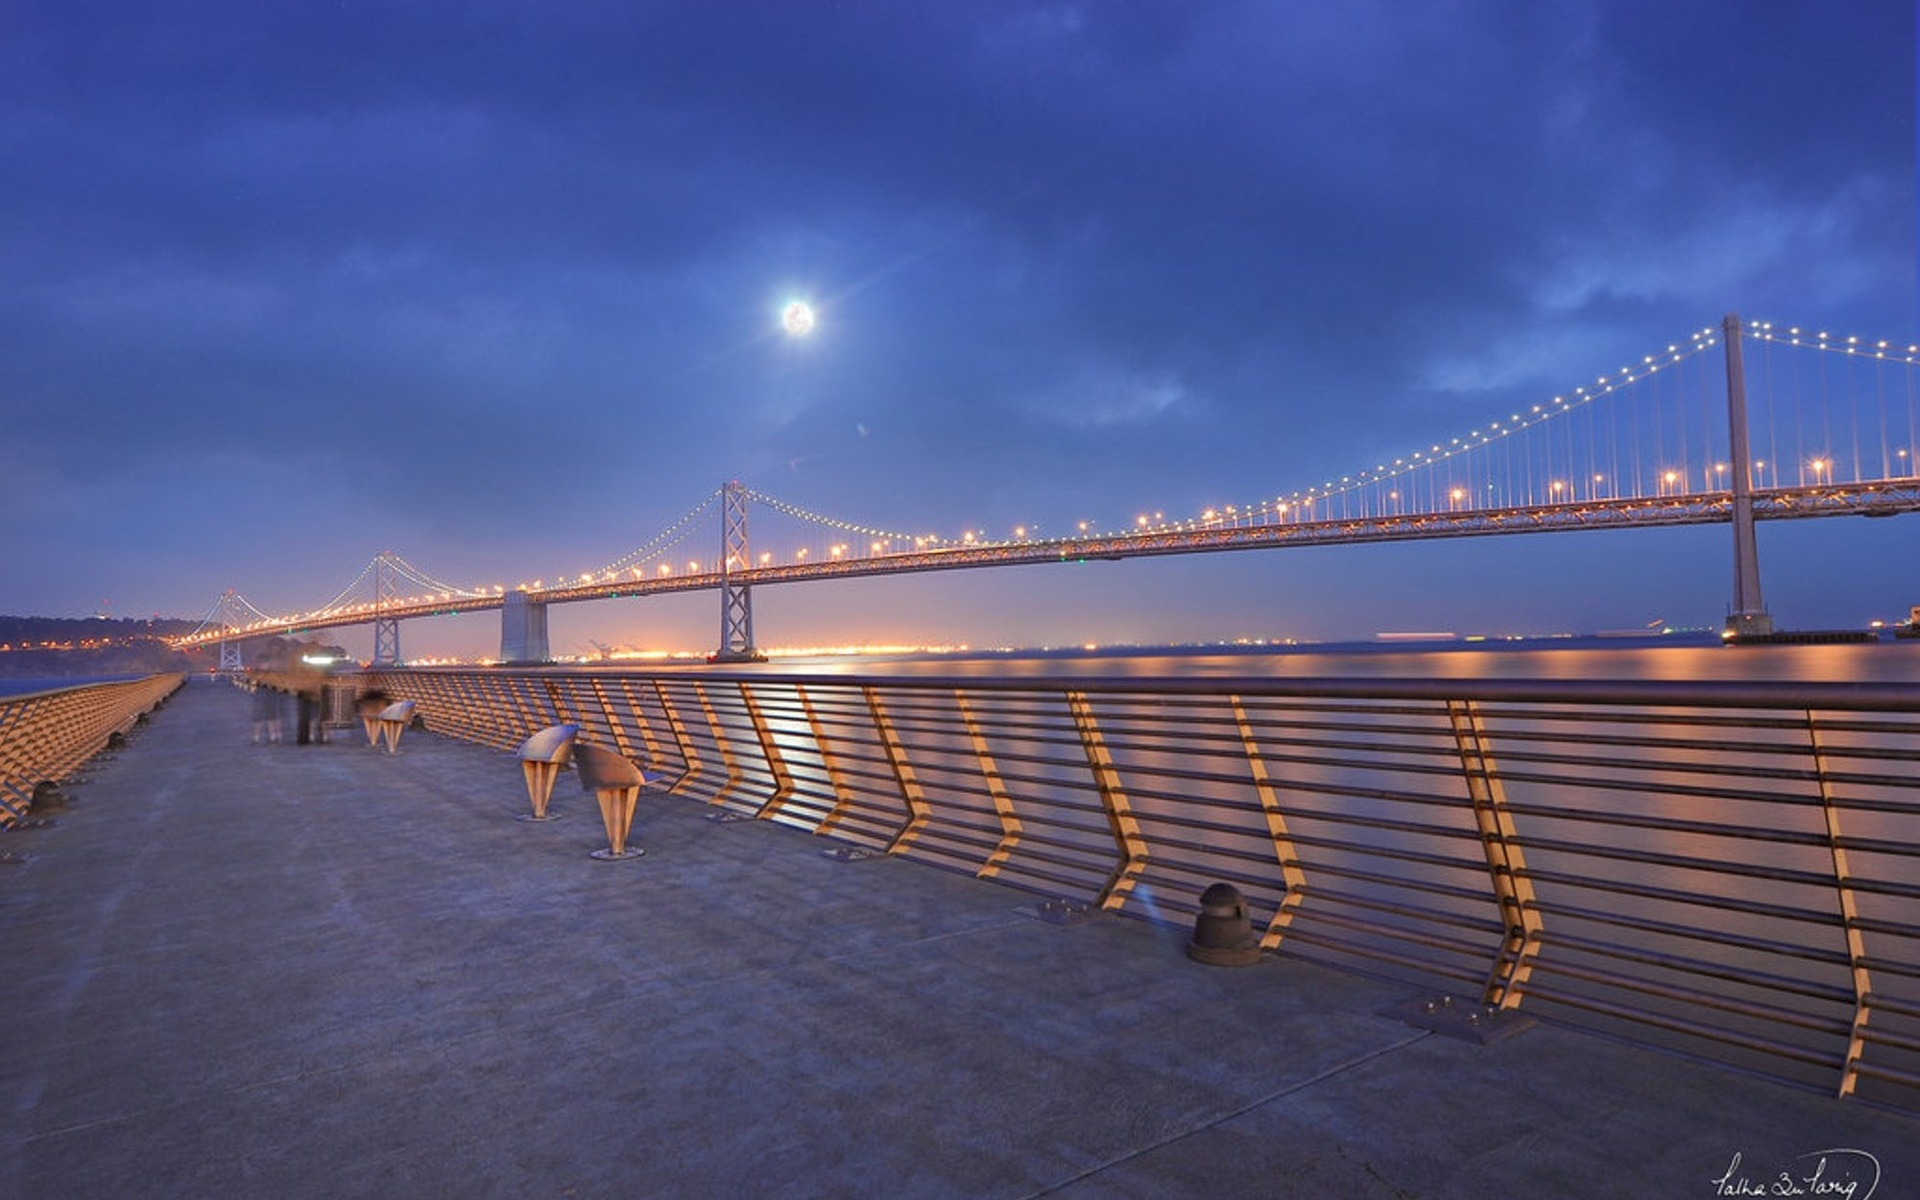 Bay Bridge Hd Wallpapers 1080p: Hd Fantastic Bay Bridge from Waterfront Wallpaper Download Free 1920x1200px